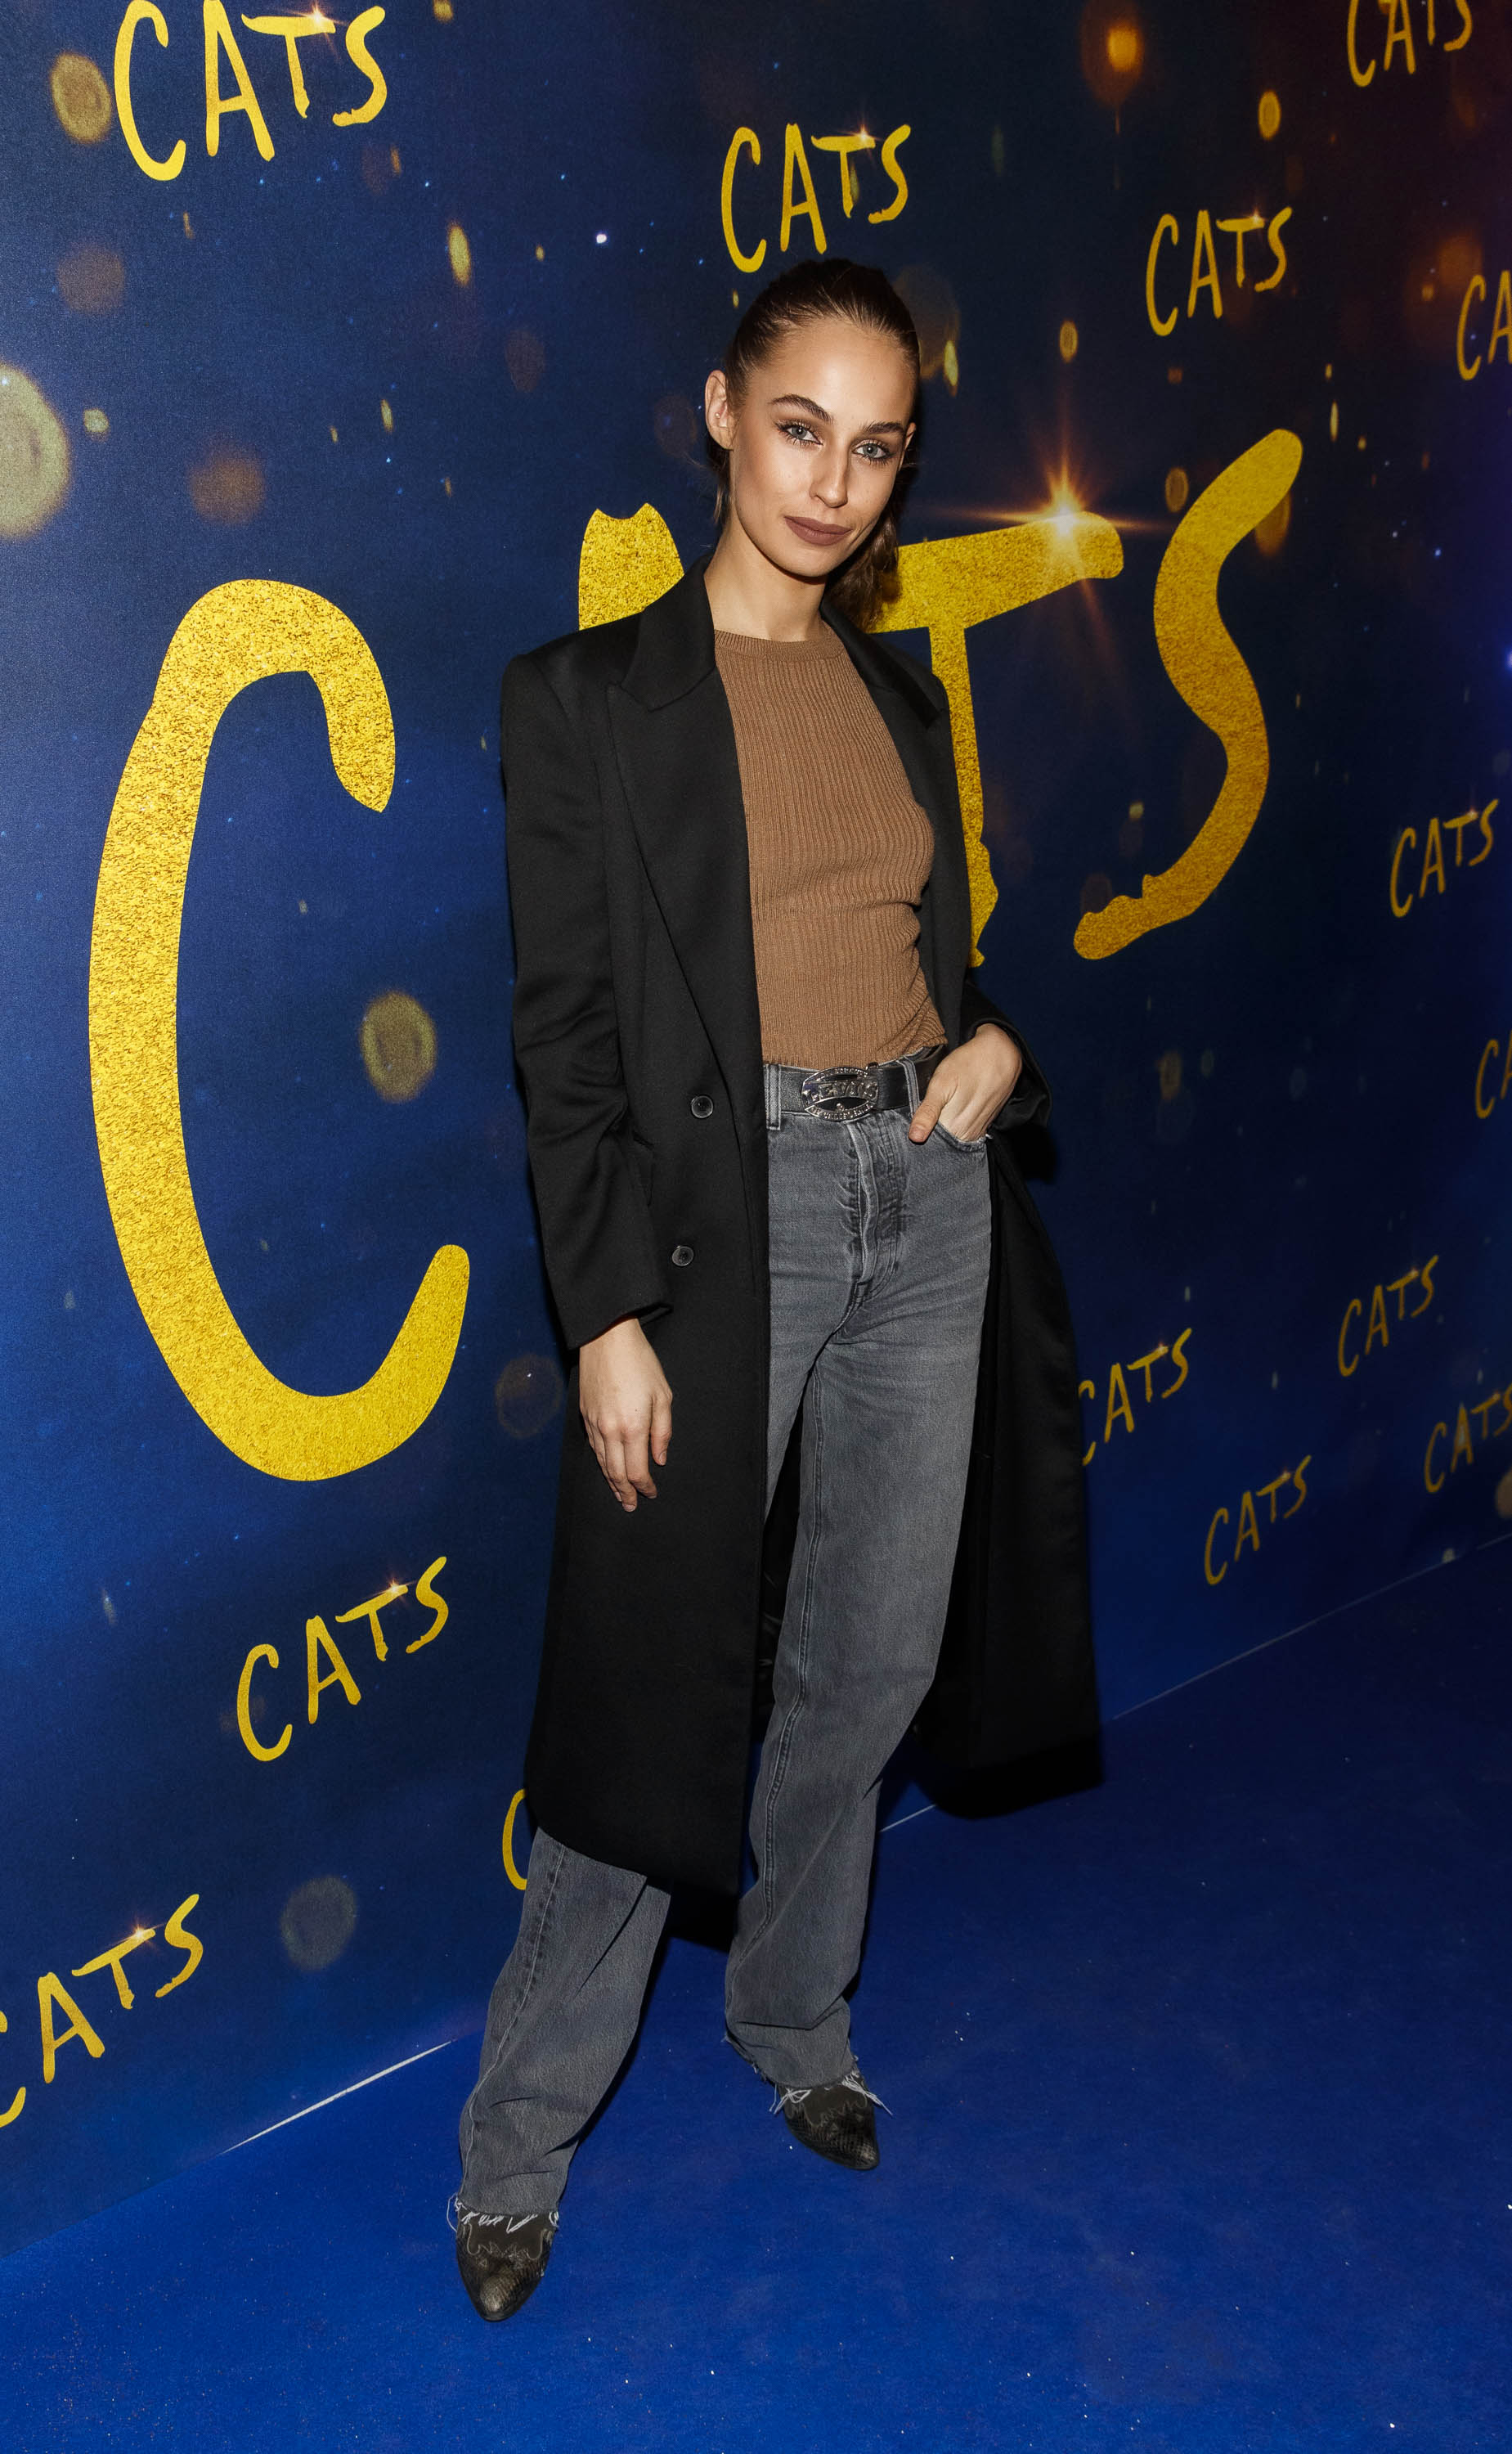 Thalia Heffernan pictured at the Irish premiere screening of 'Cats' at The Stella Theatre, Rathmines. Picture: Andres Poveda